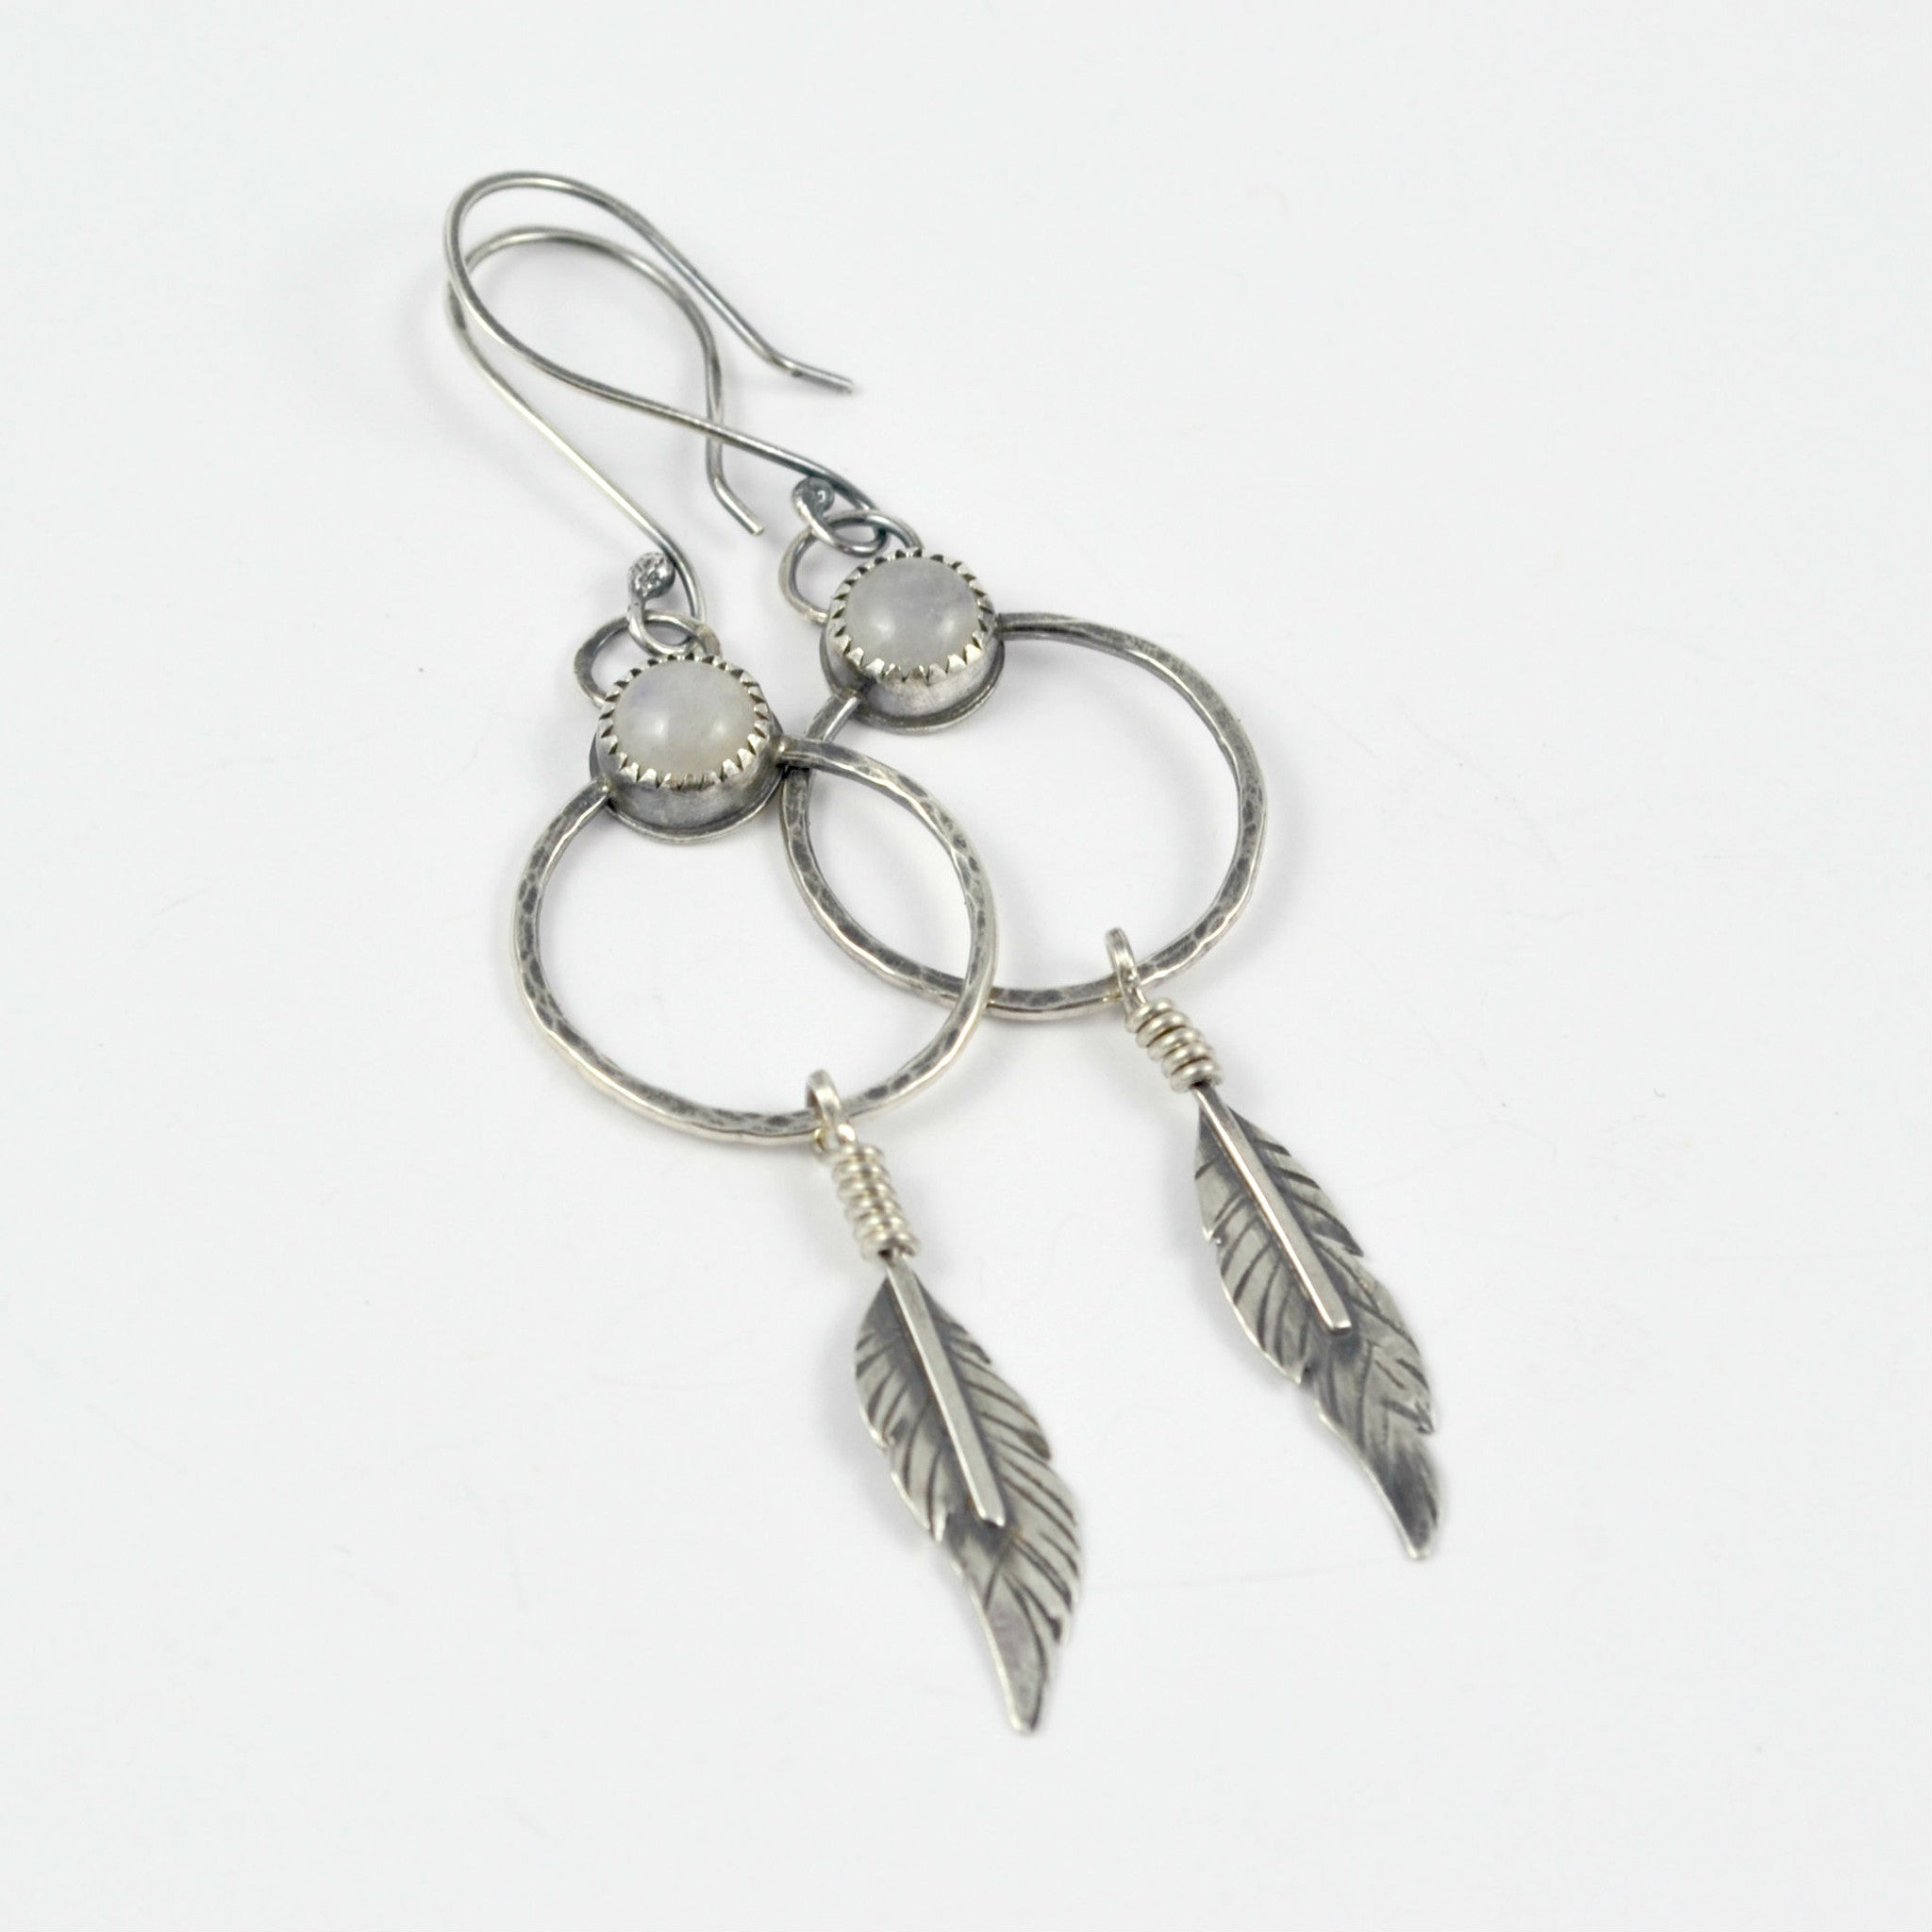 Moonstone Dreamcatcher Earrings - Gemspell